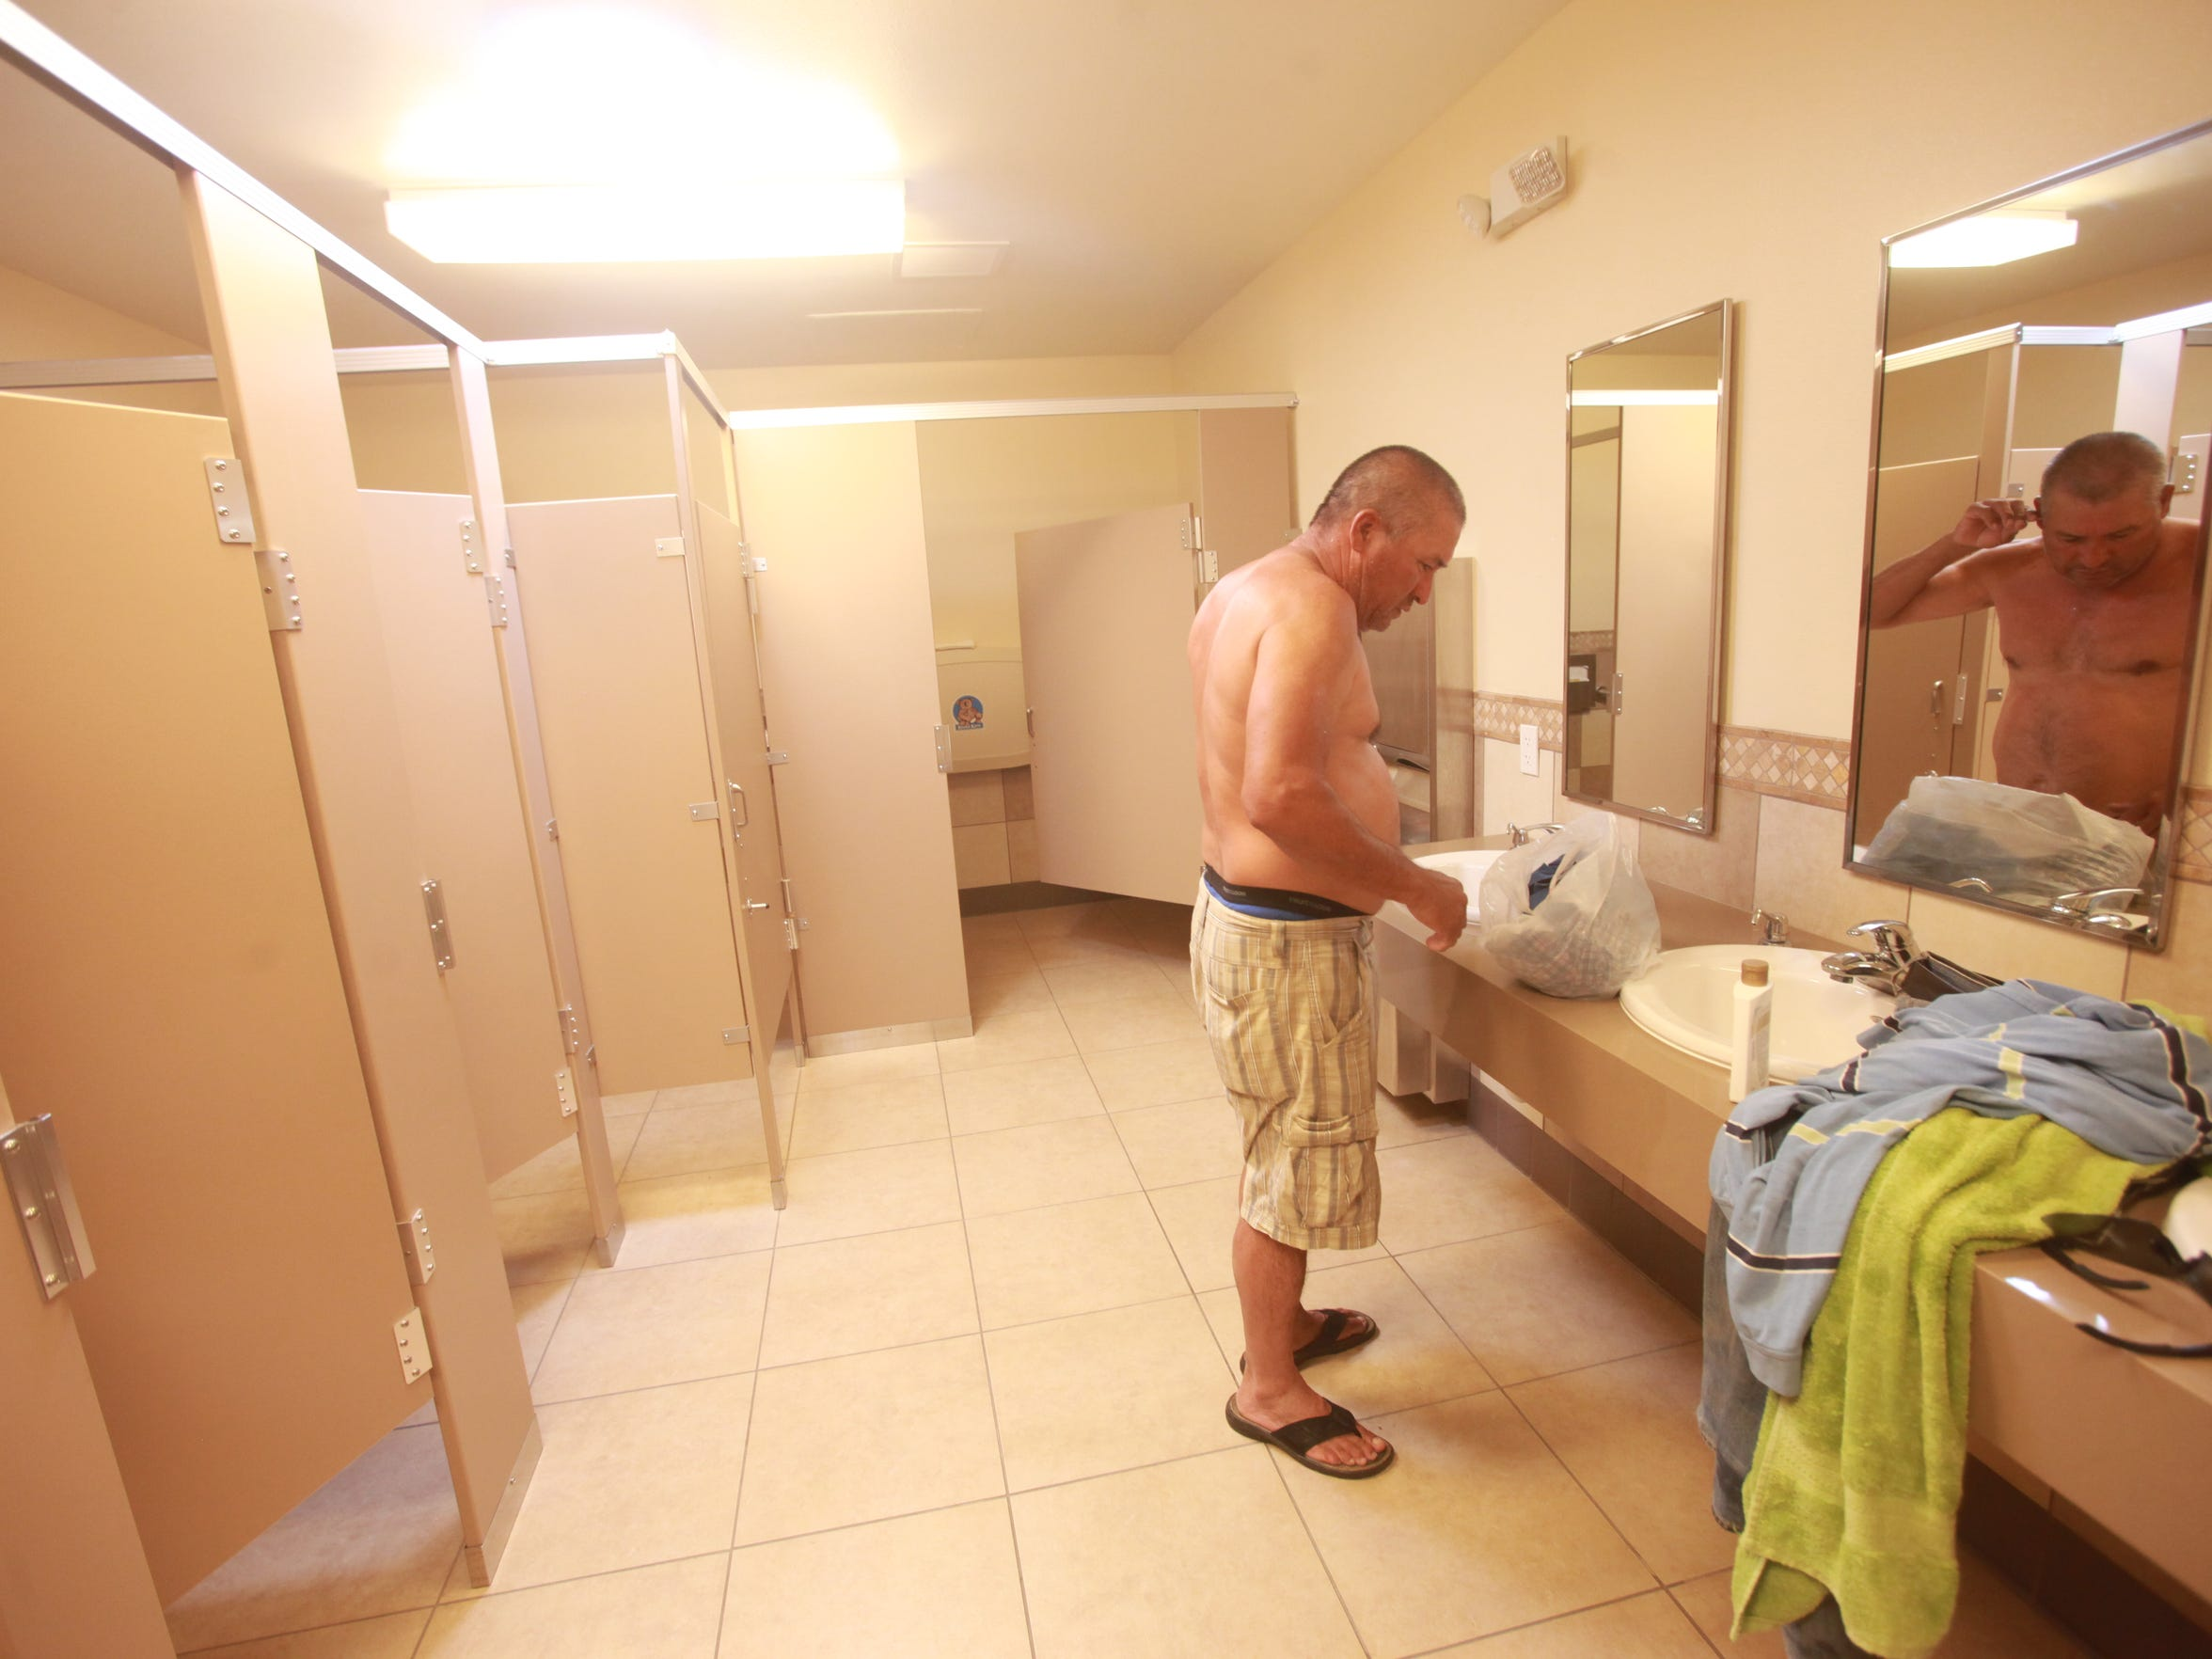 A migrant agricultural worker uses a public bathroom